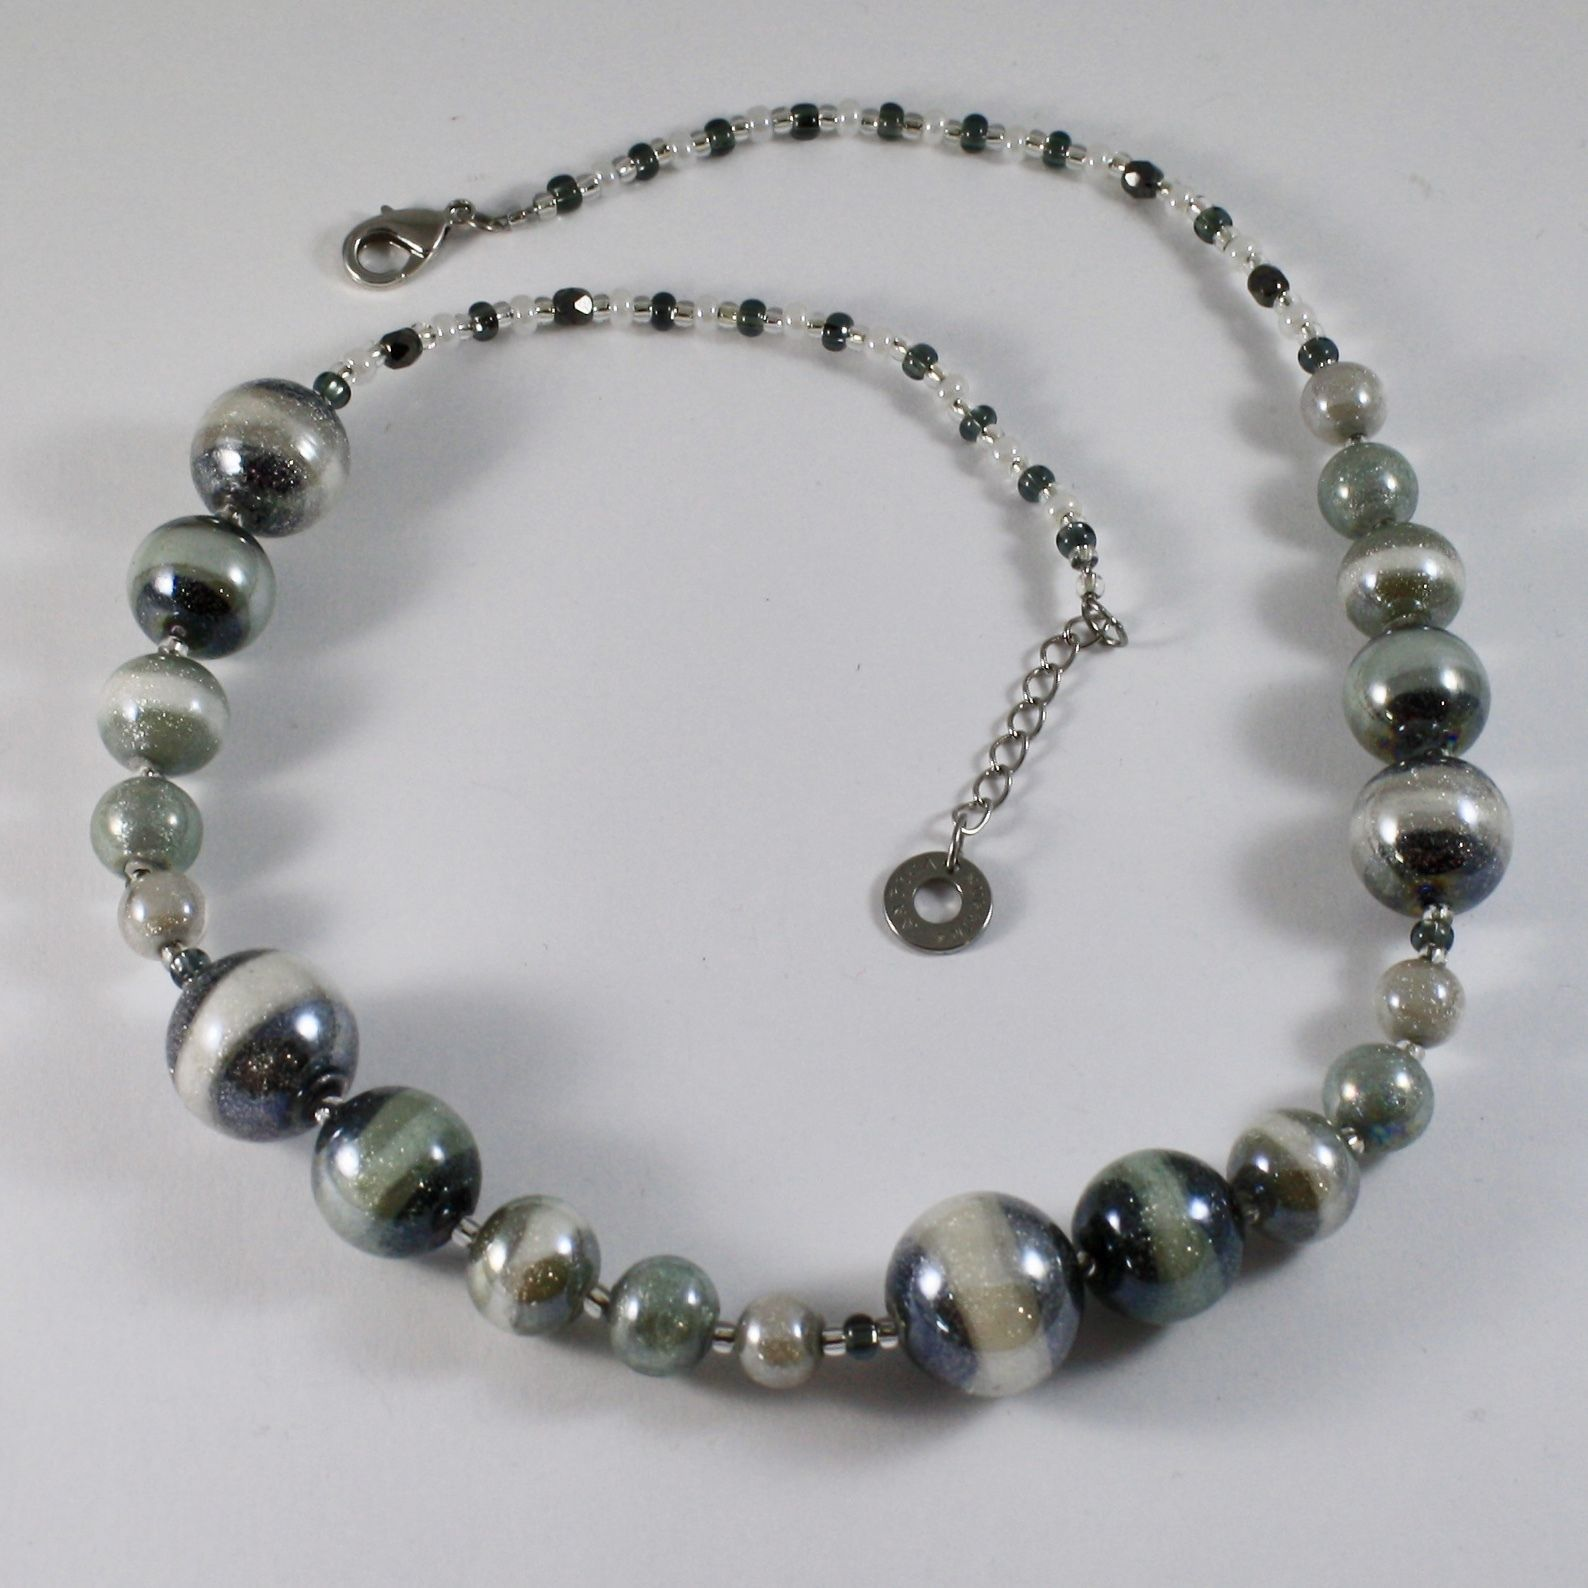 ANTICA MURRINA VENEZIA NECKLACE WITH BLACK WHITE MURANO GLASS BALLS, 20 INCHES